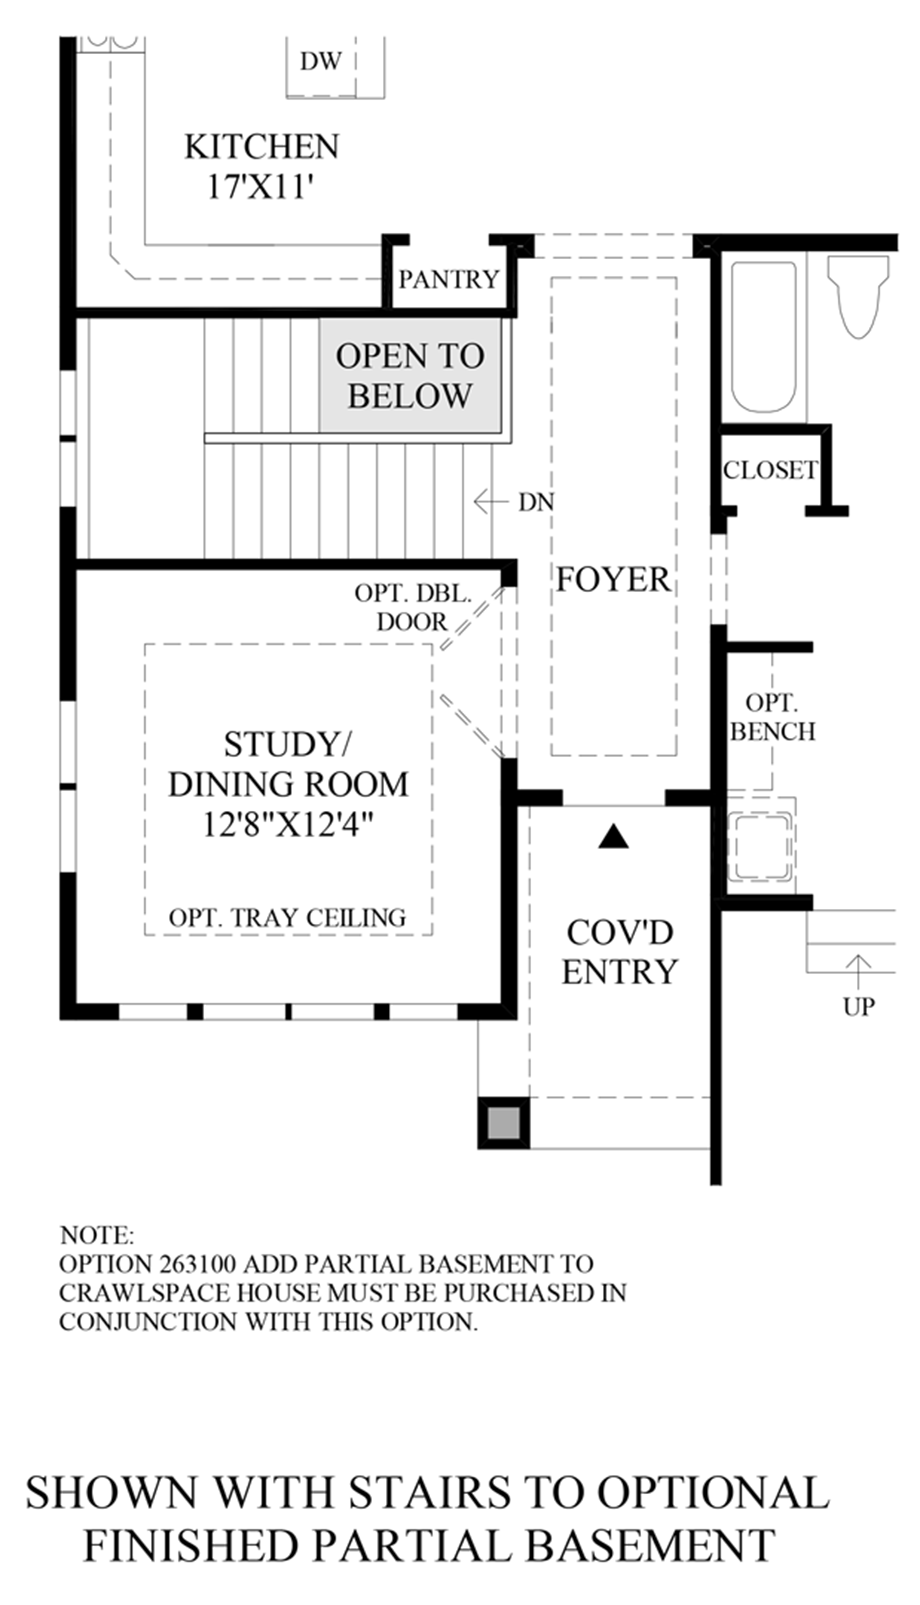 Optional Stairs to Finished Basement Floor Plan